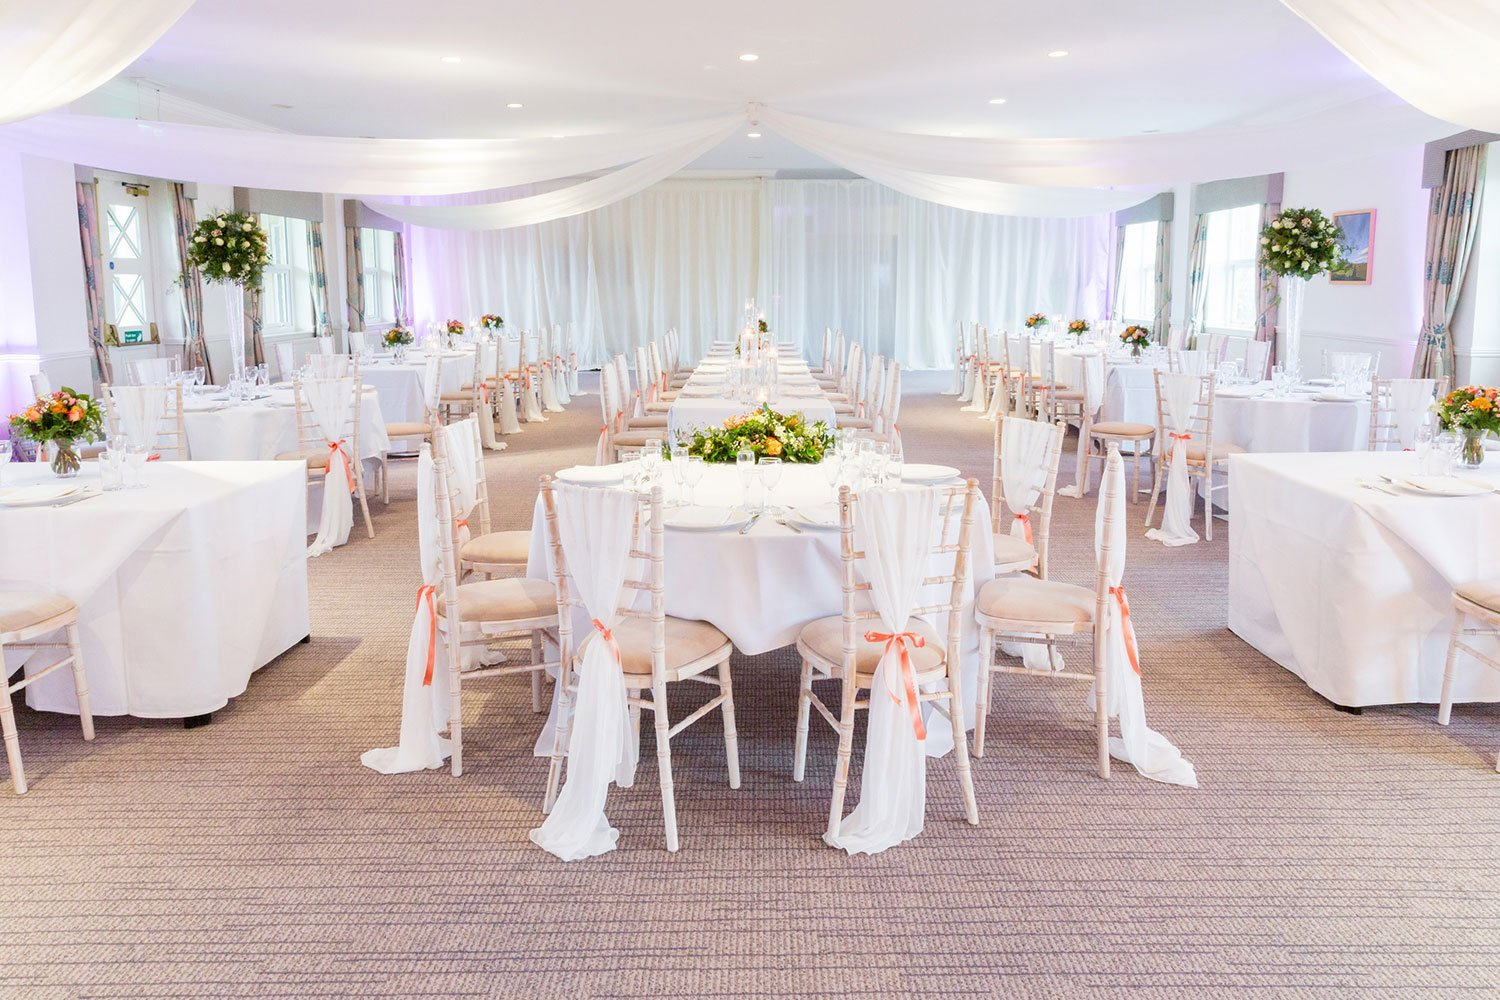 Pavilions of Harrogate Wedding Venue